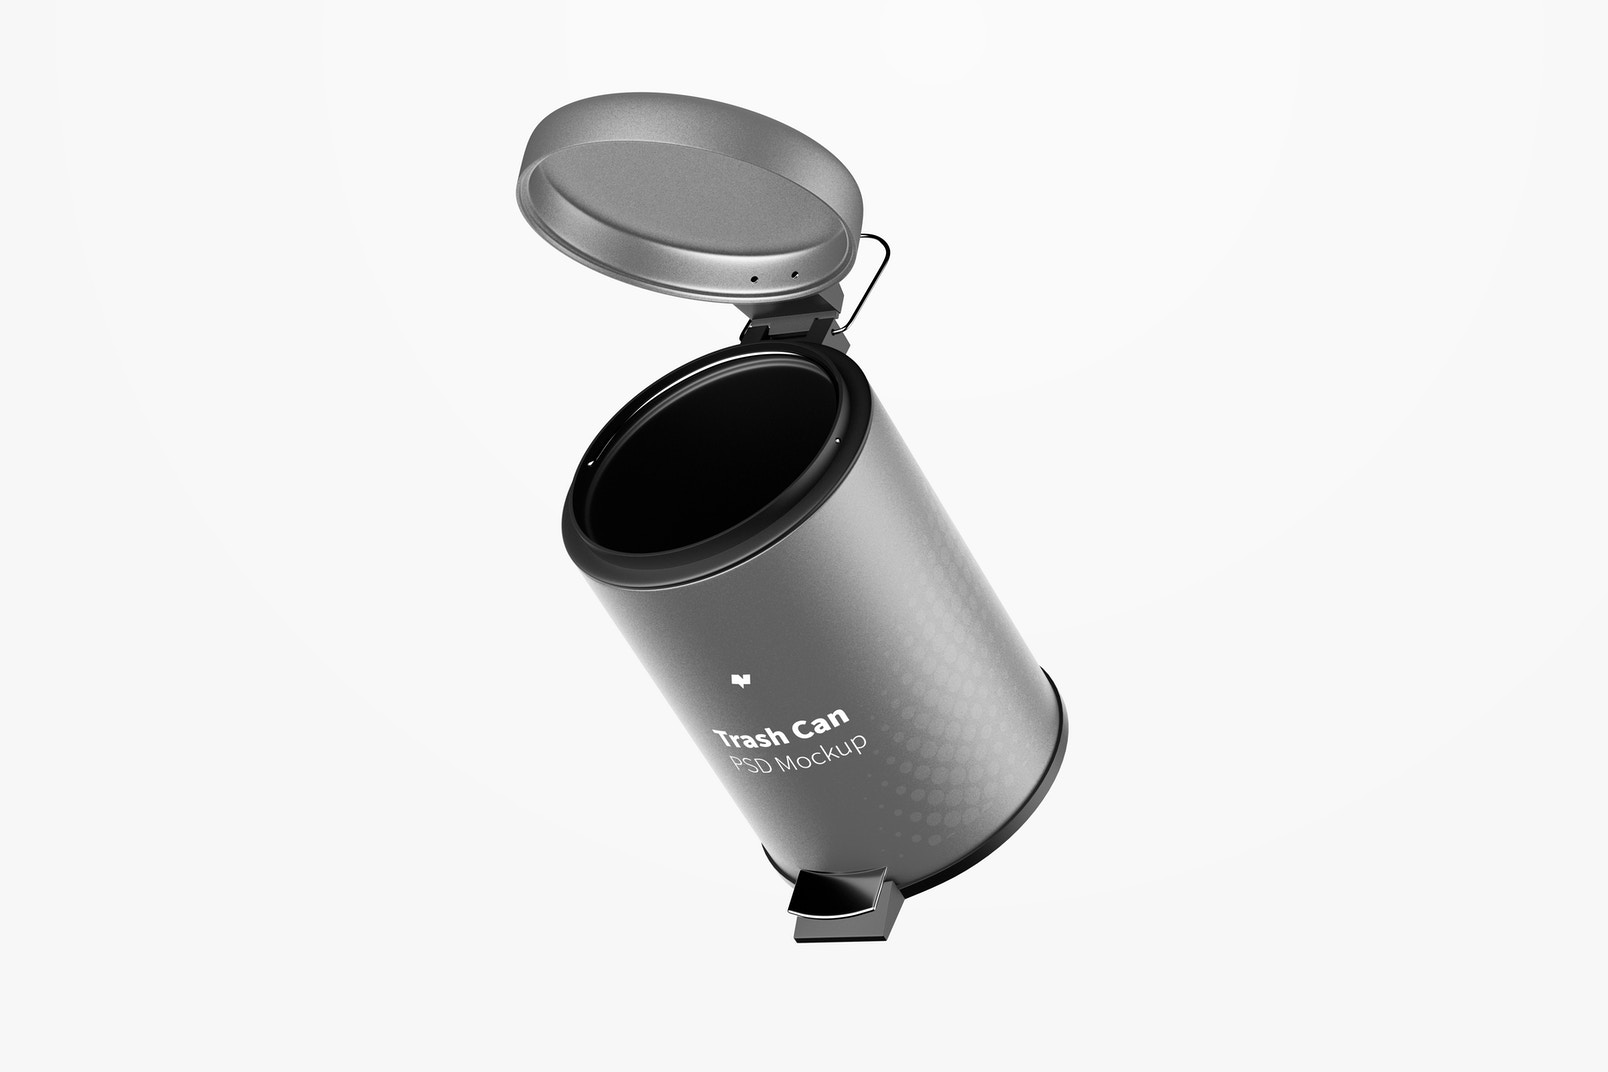 Trash Can With Foot Pedal Mockup, Floating